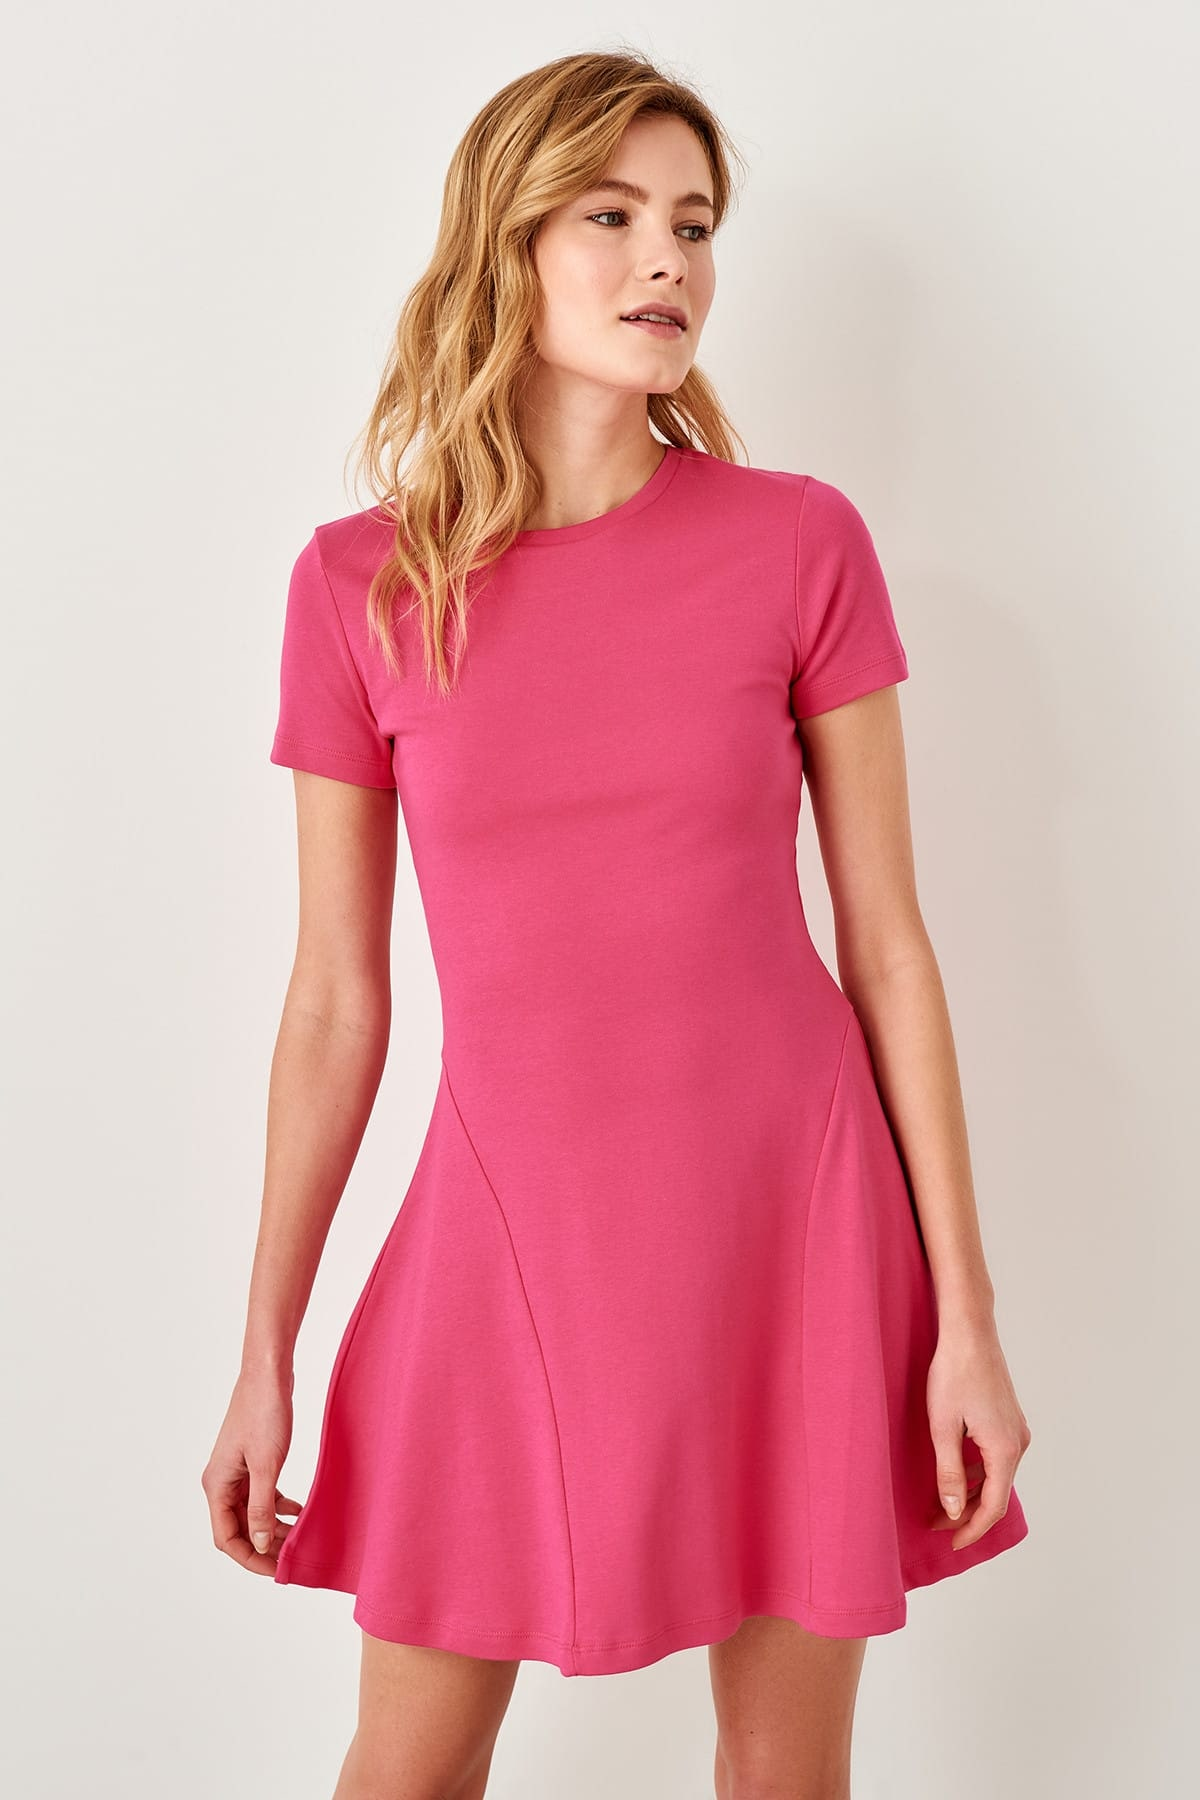 Trendyol Fuchsia Hand-Wheel Knit Dress